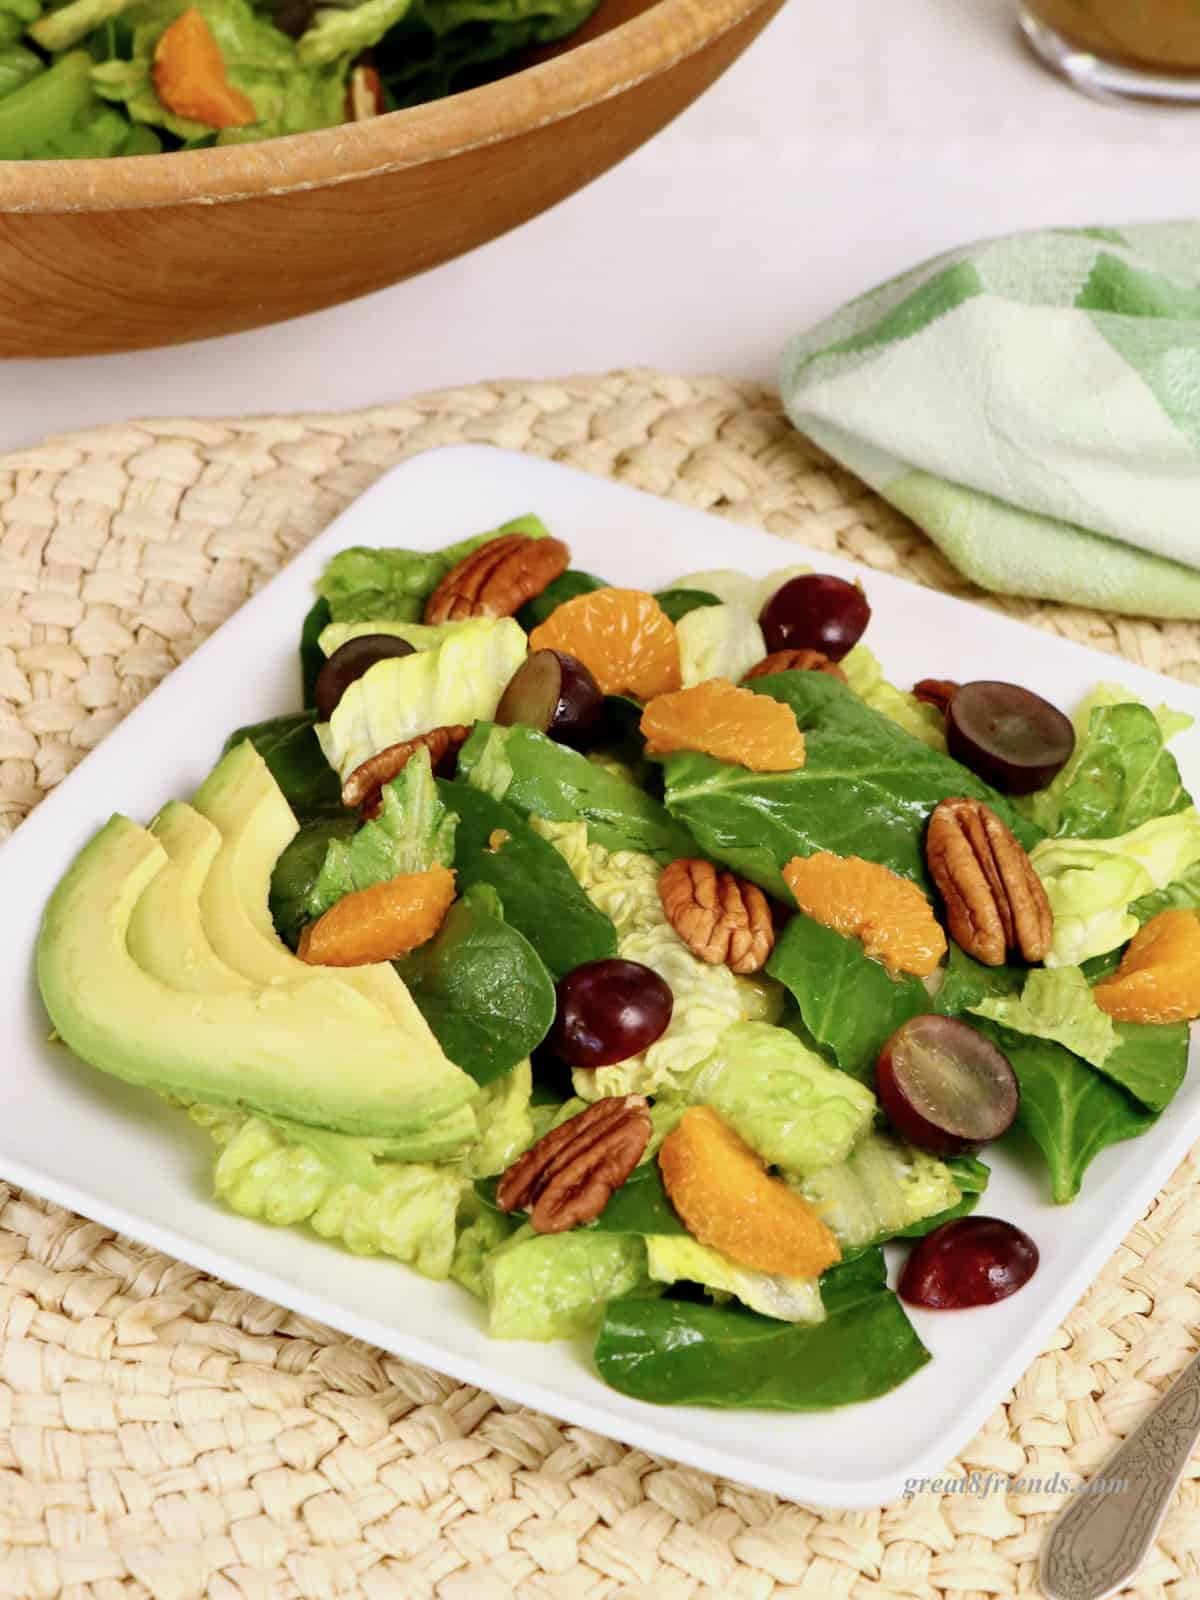 A serving of salad with tangerine slices, pecans, grapes and avocados on a square white plate, on a woven placemat with a green napkin and a wooden bowl of salad in the background.